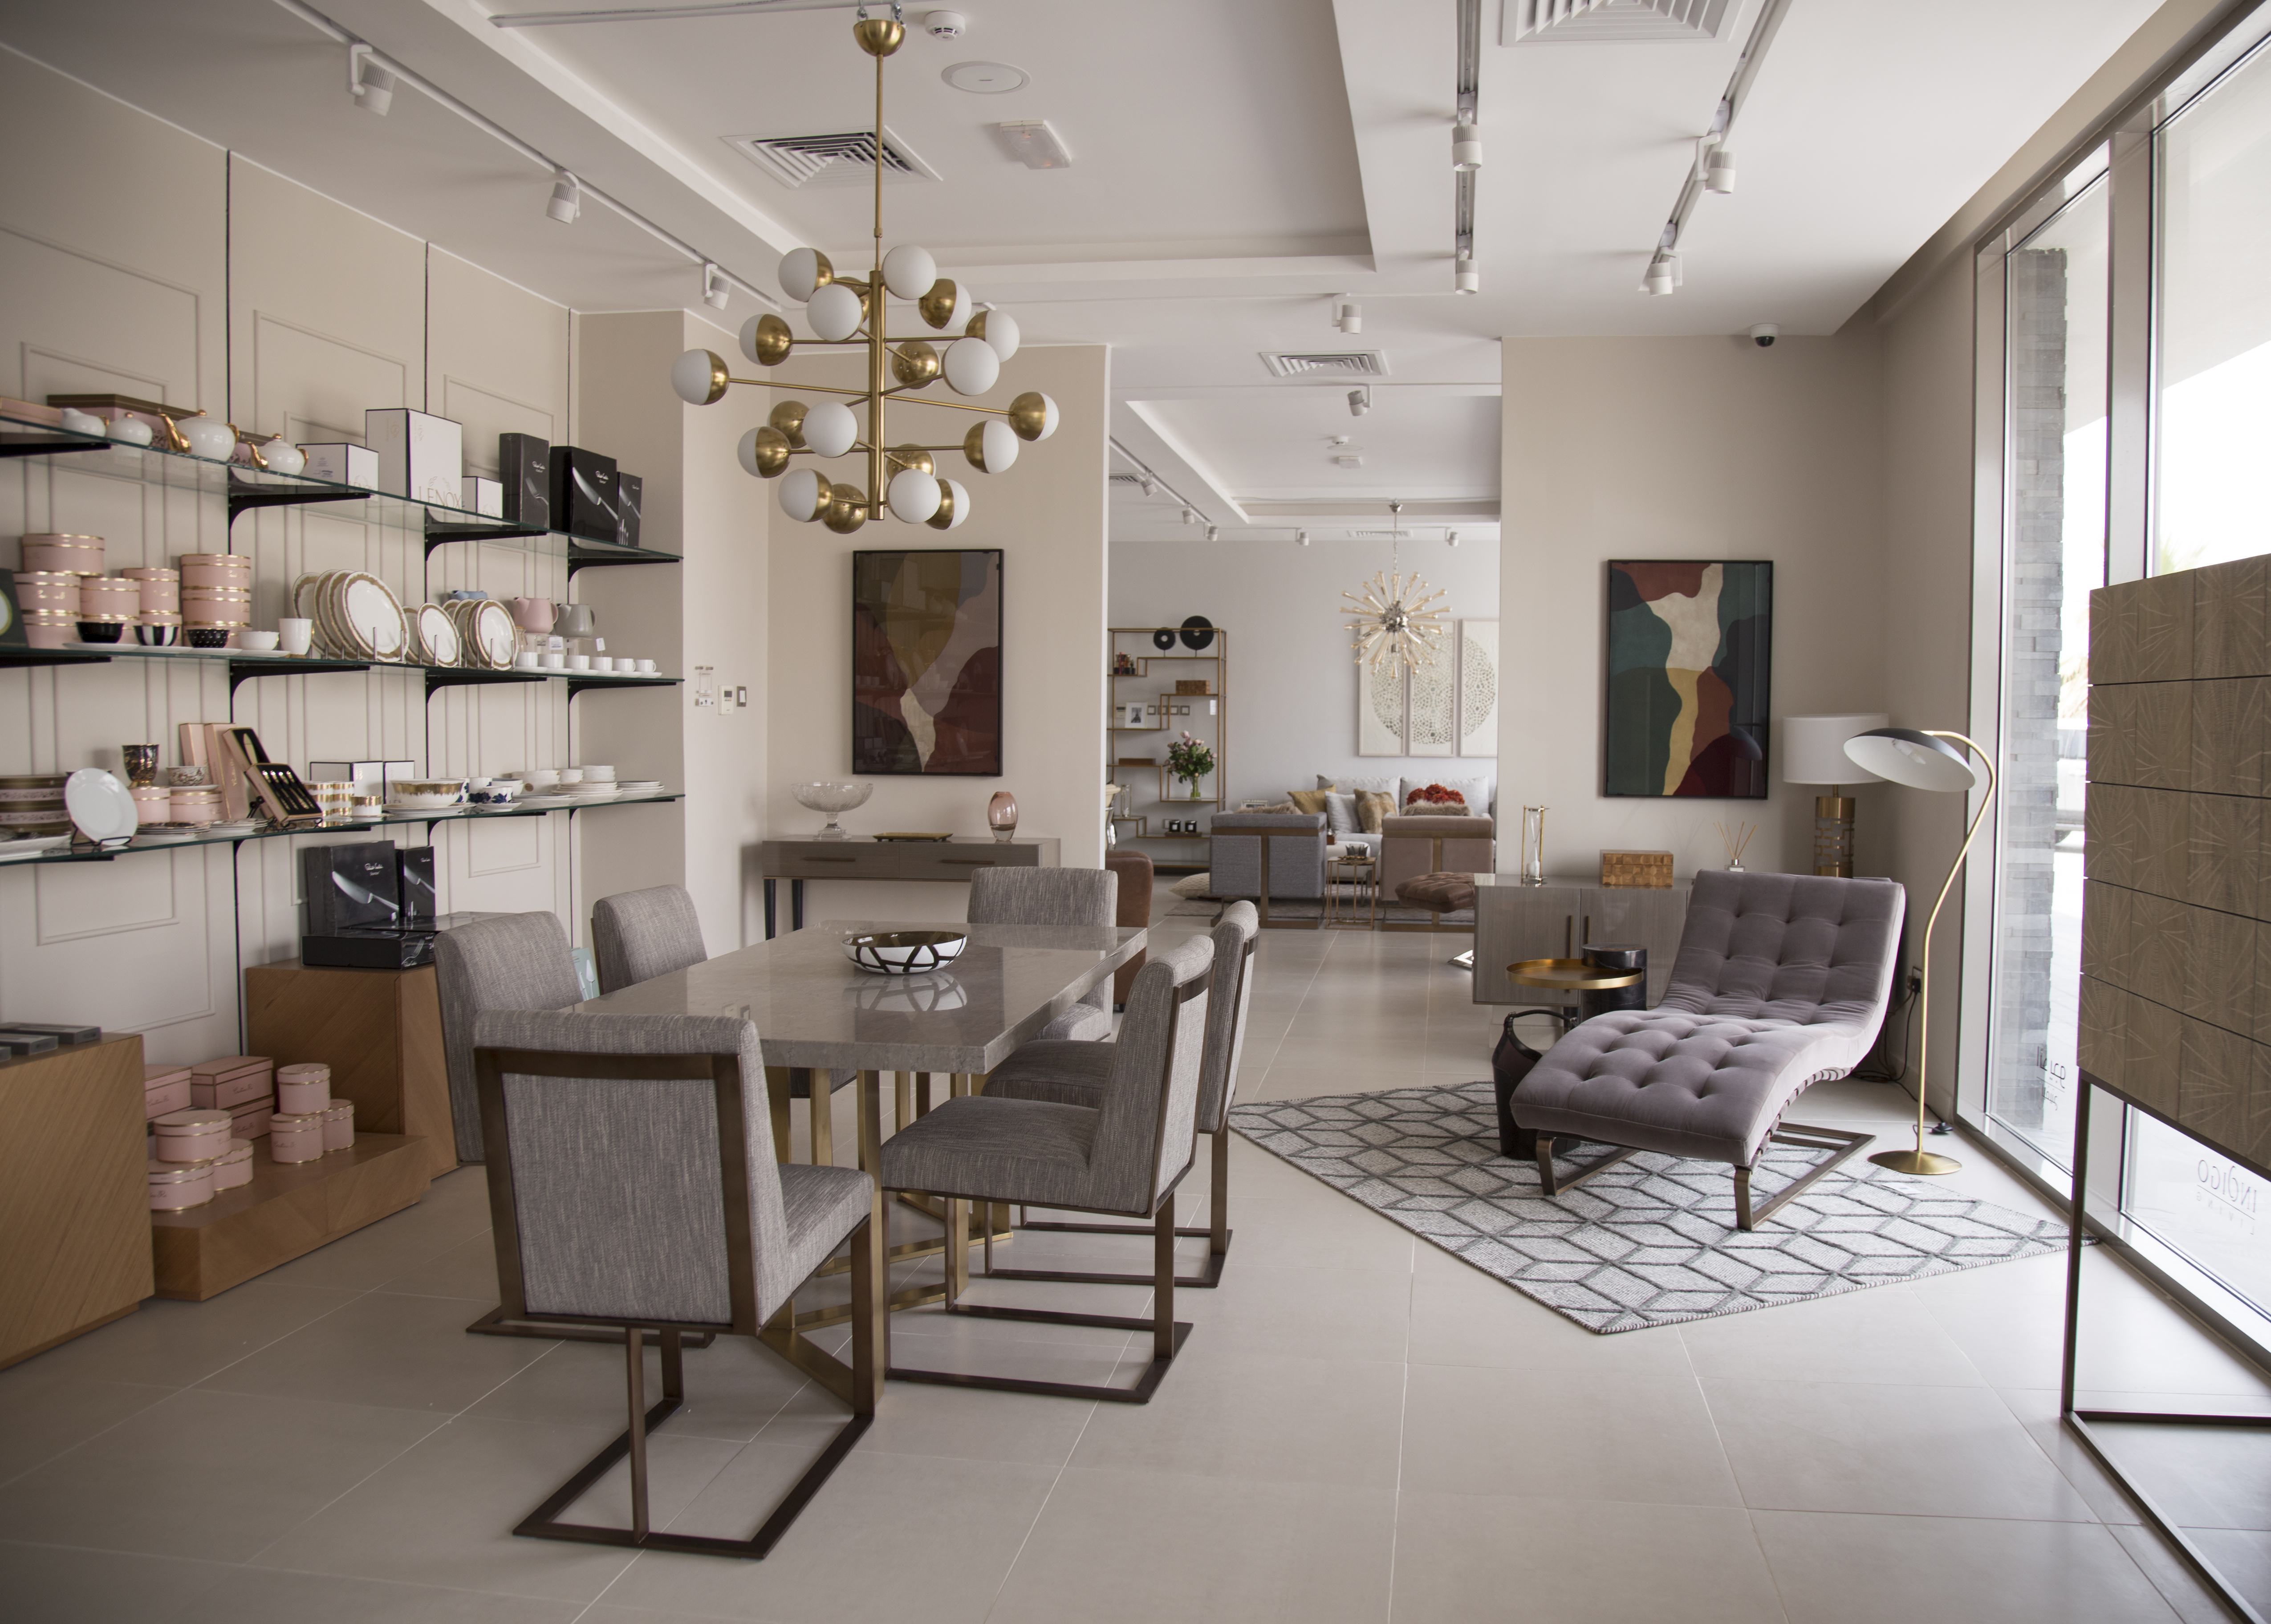 Home Furnishing Retailer And Interior Design Service Provider, Indigo  Living Opened Its Second Store In The Emirate On Al Wasl Road.